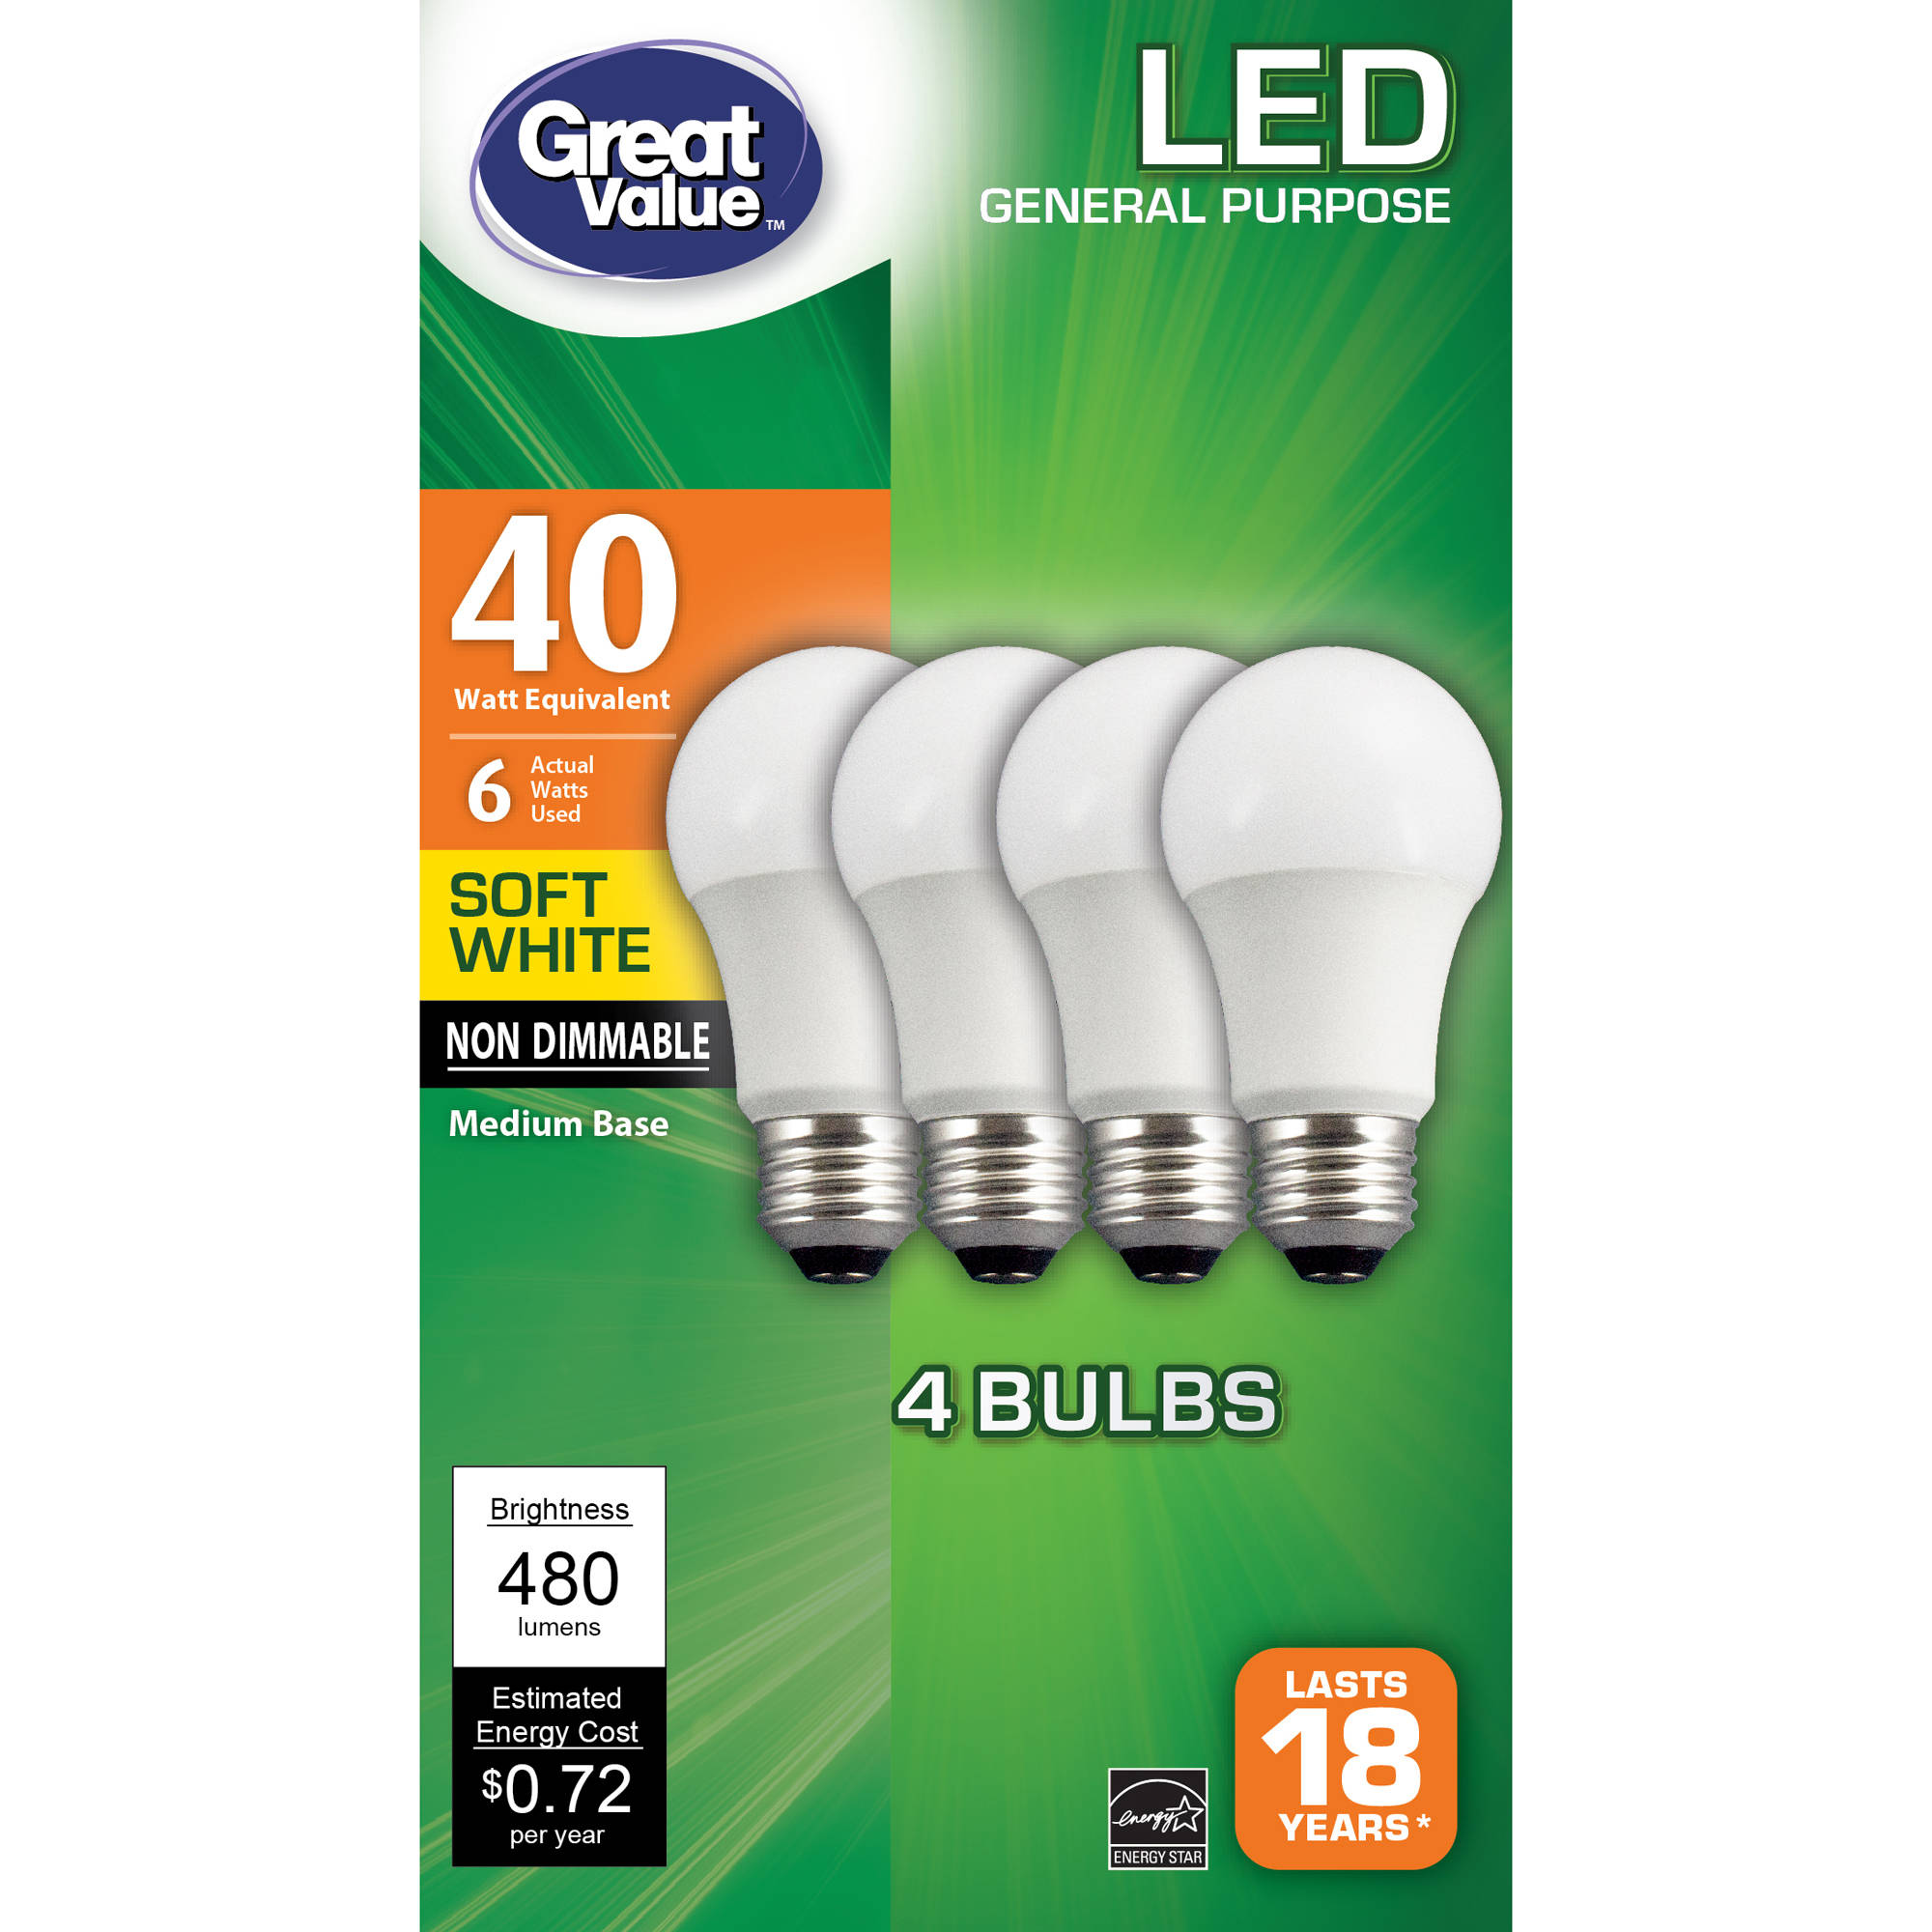 Great Value LED A19 (E26) Light Bulbs 6W (40W Equivalent), Soft White, 4-Pack